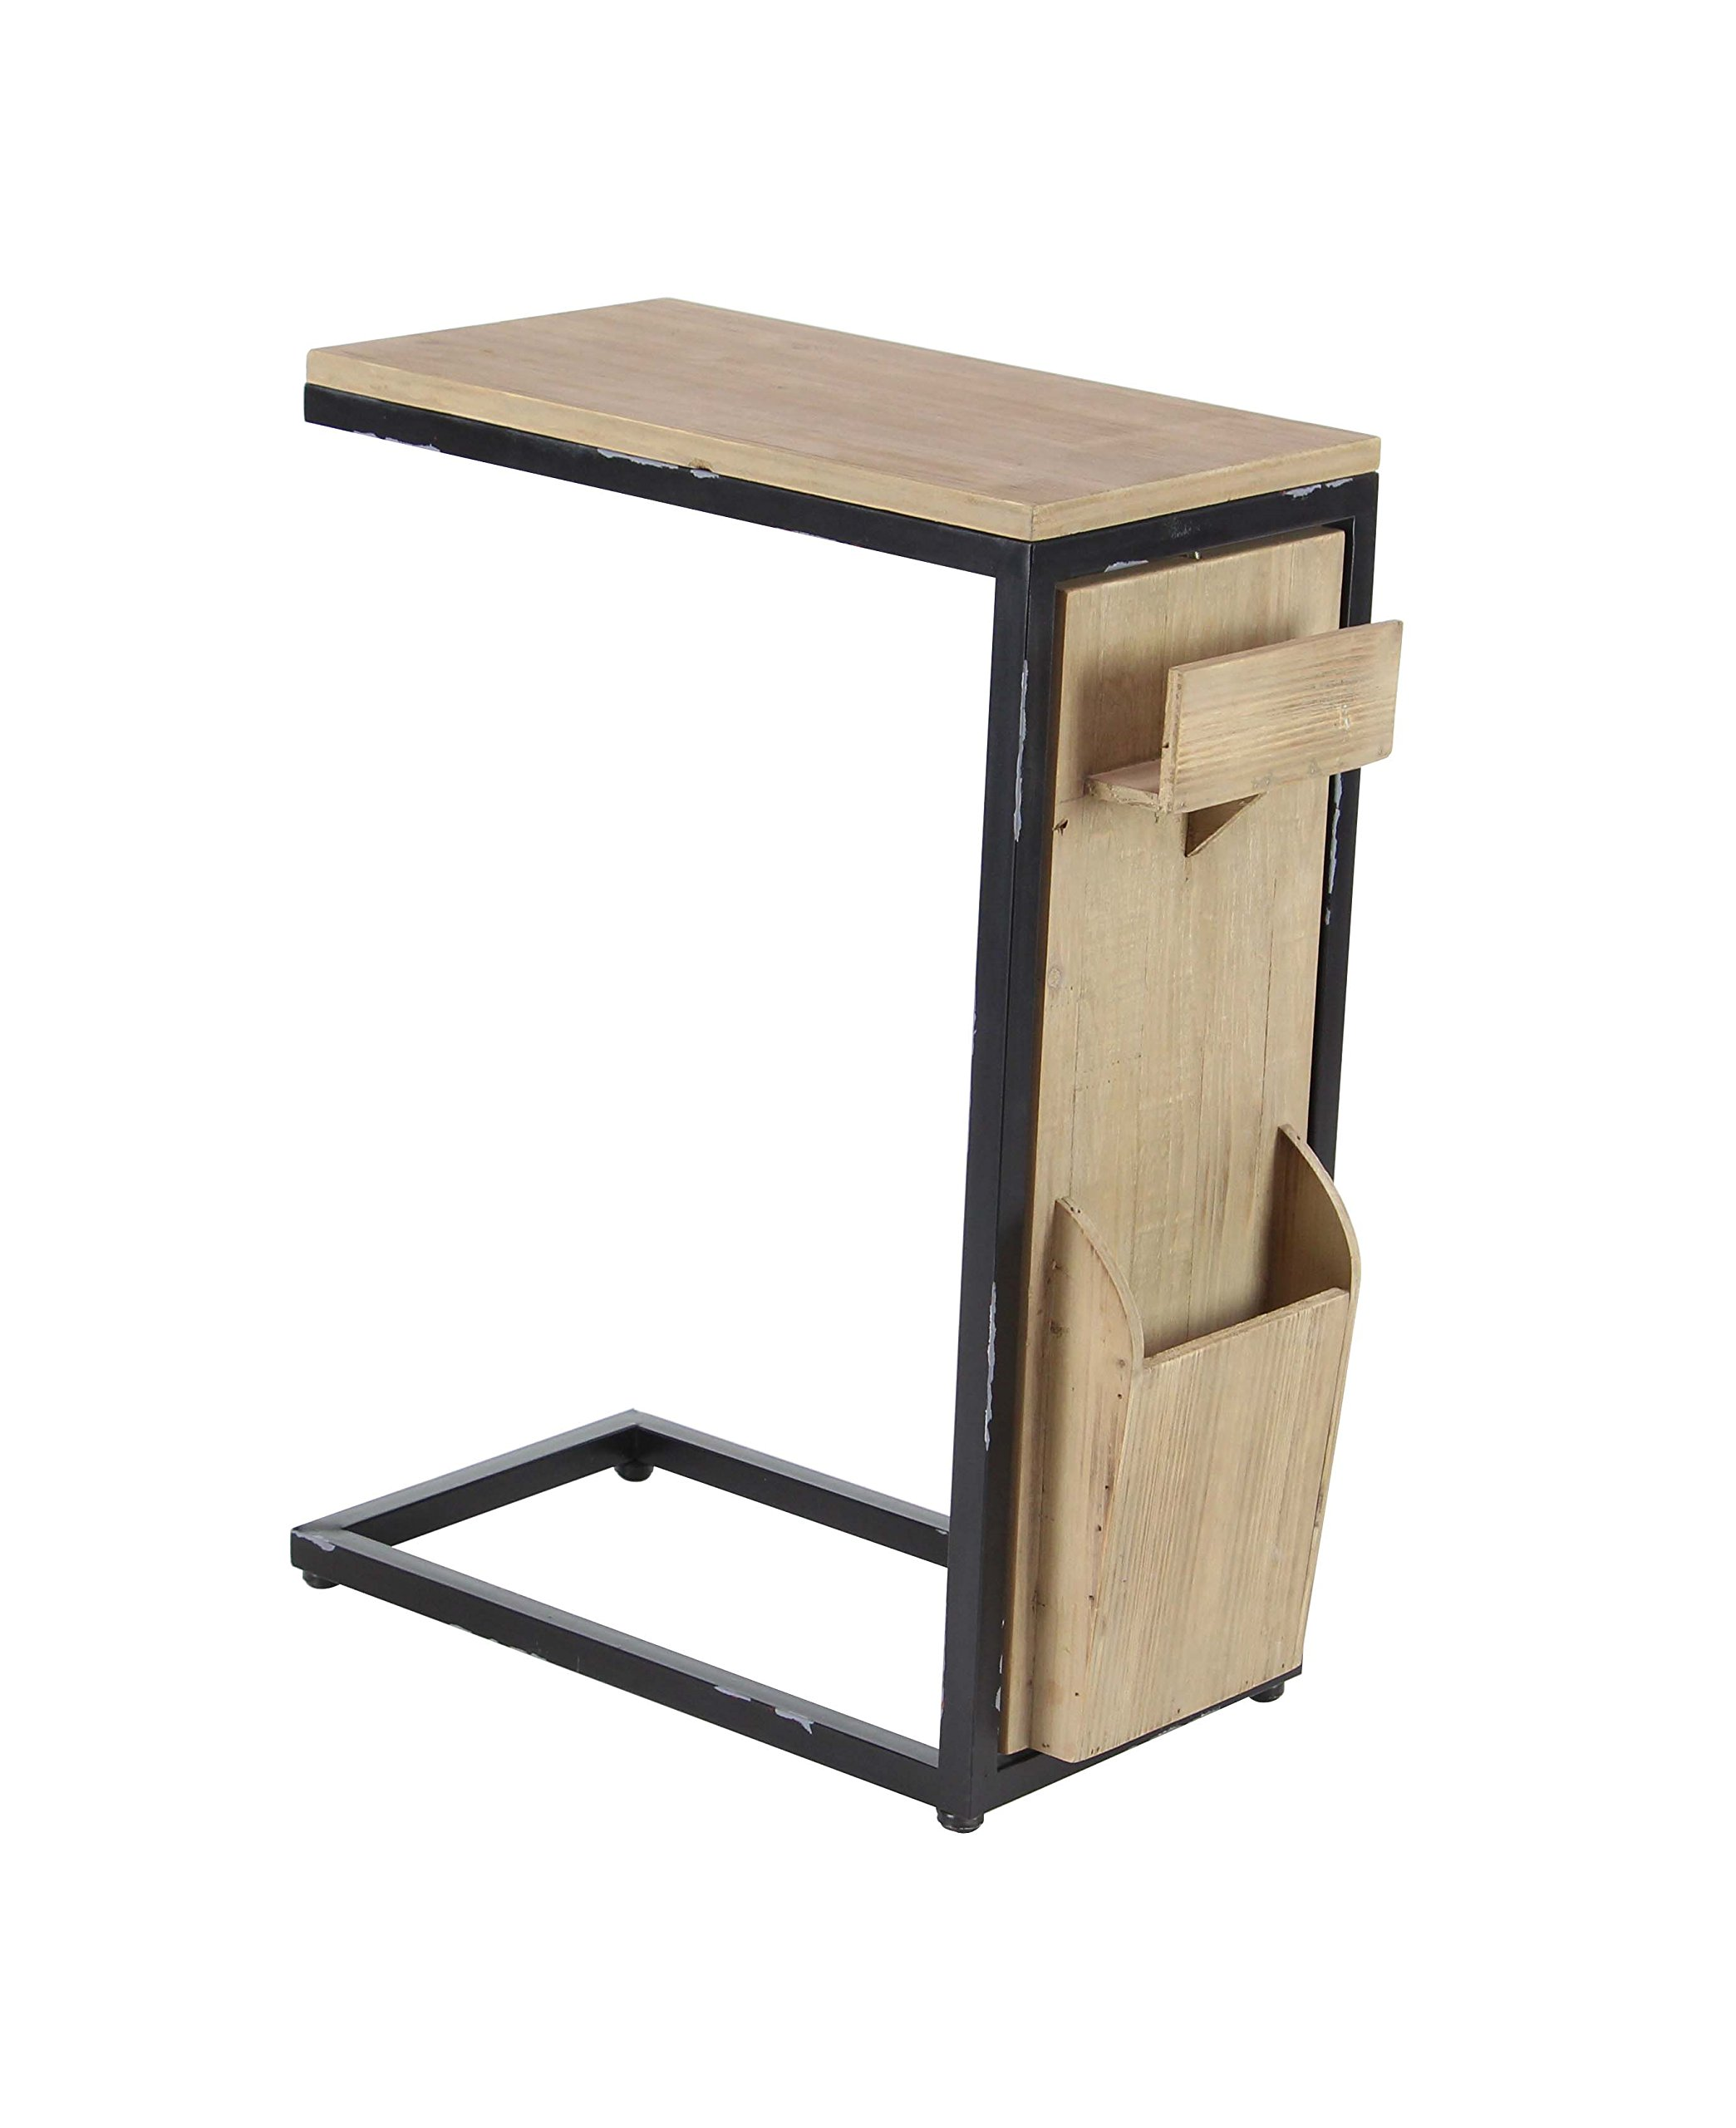 Deco 79 60199 60199 Side Table, Light Brown/Black